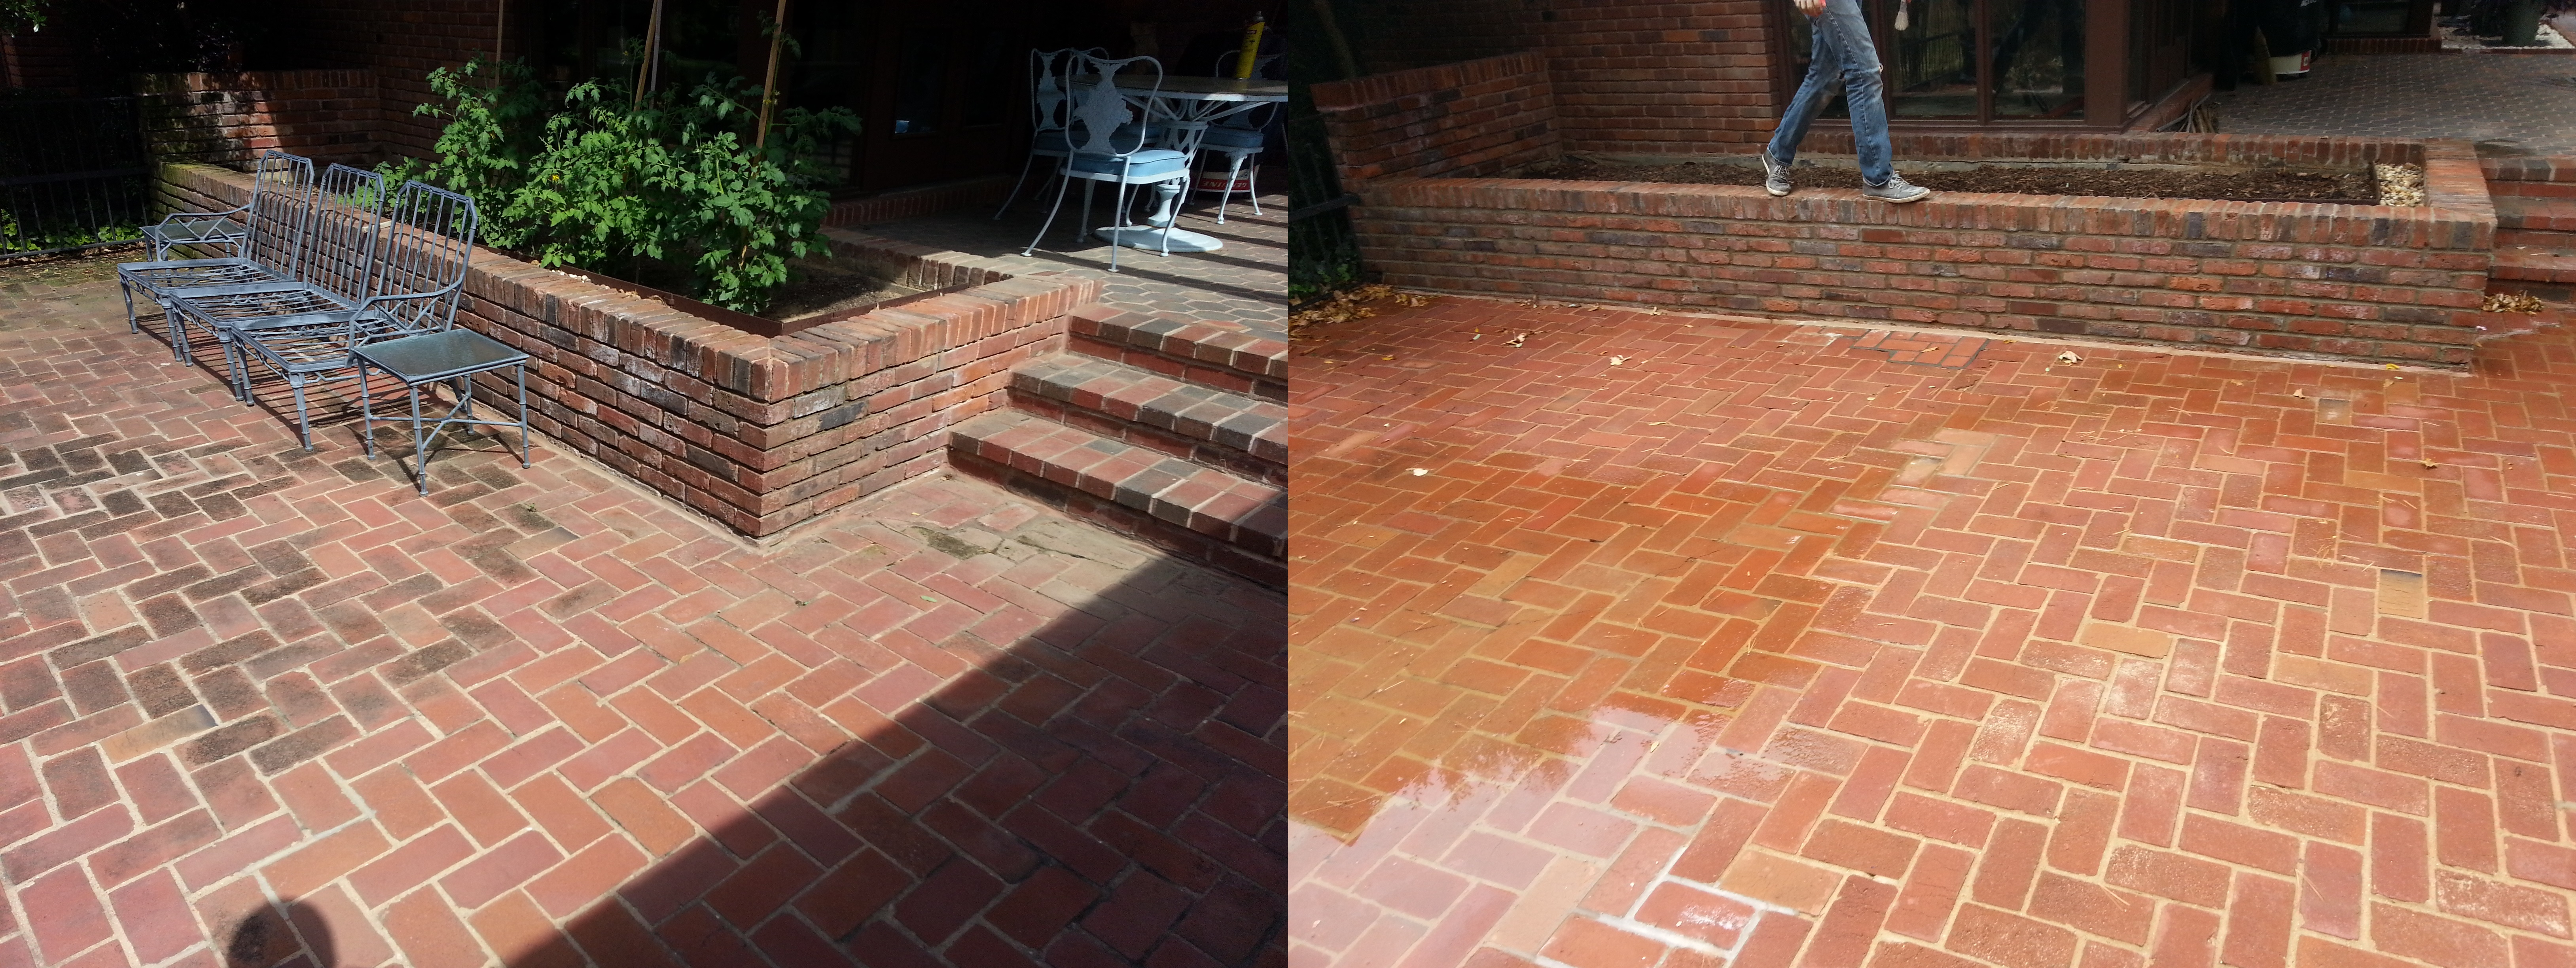 Power Washed Brick Patio And Tuckpointing Brick Wall Before And After